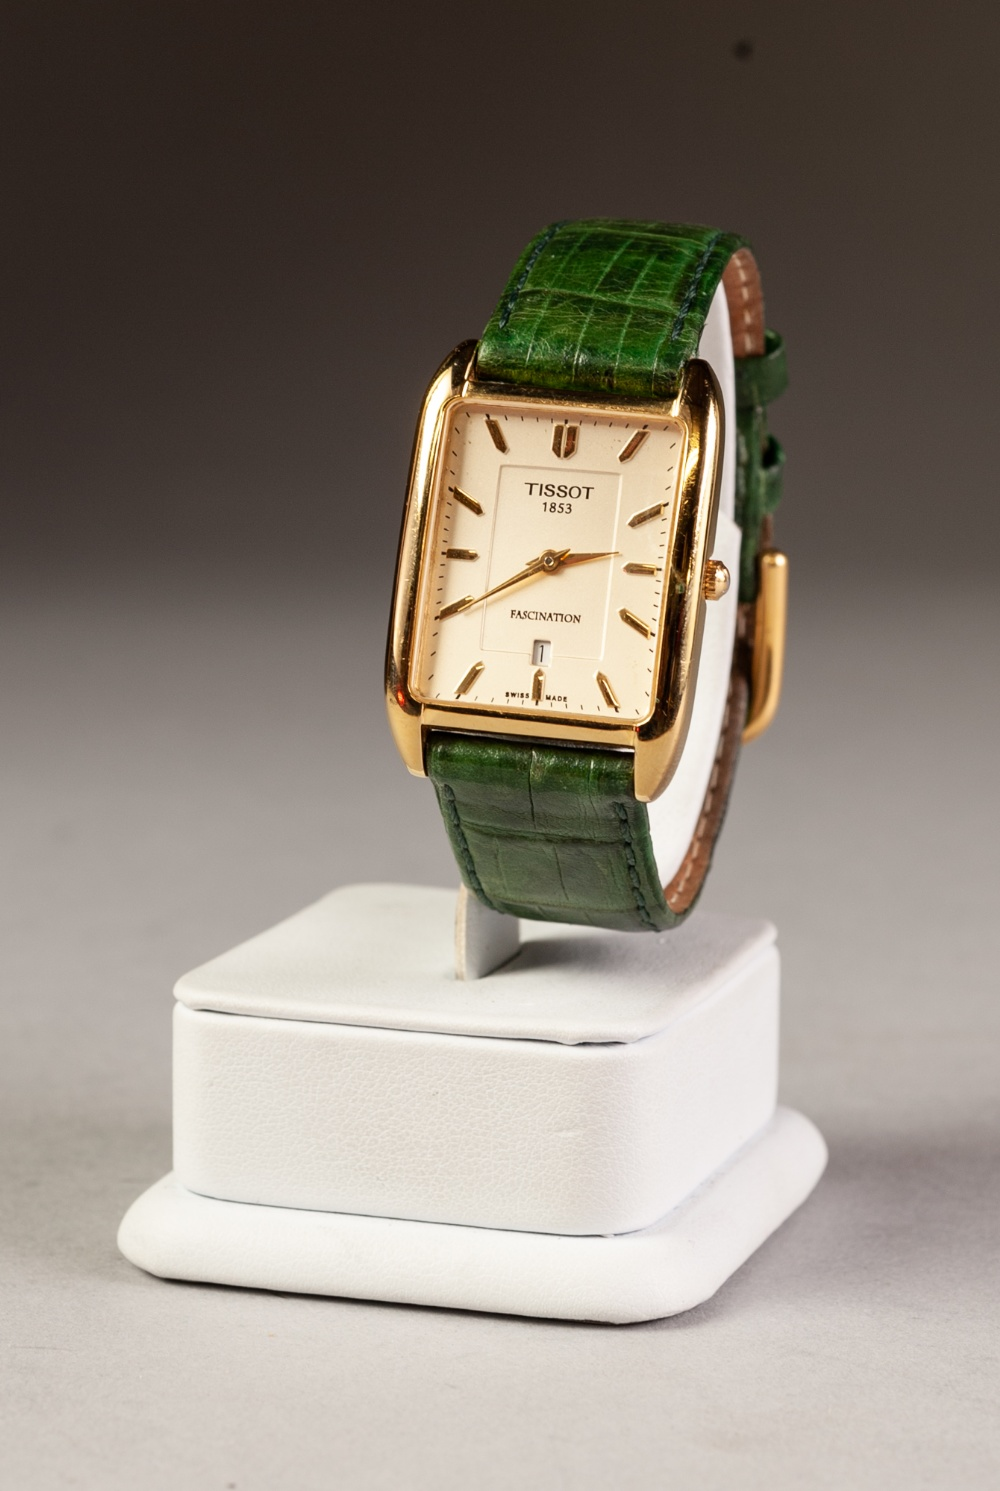 Lot 8 - LIPSILVA GOLD PLATED CASED GENTLEMAN'S WRISTWATCH on leather strap together with a TISSOT 1853